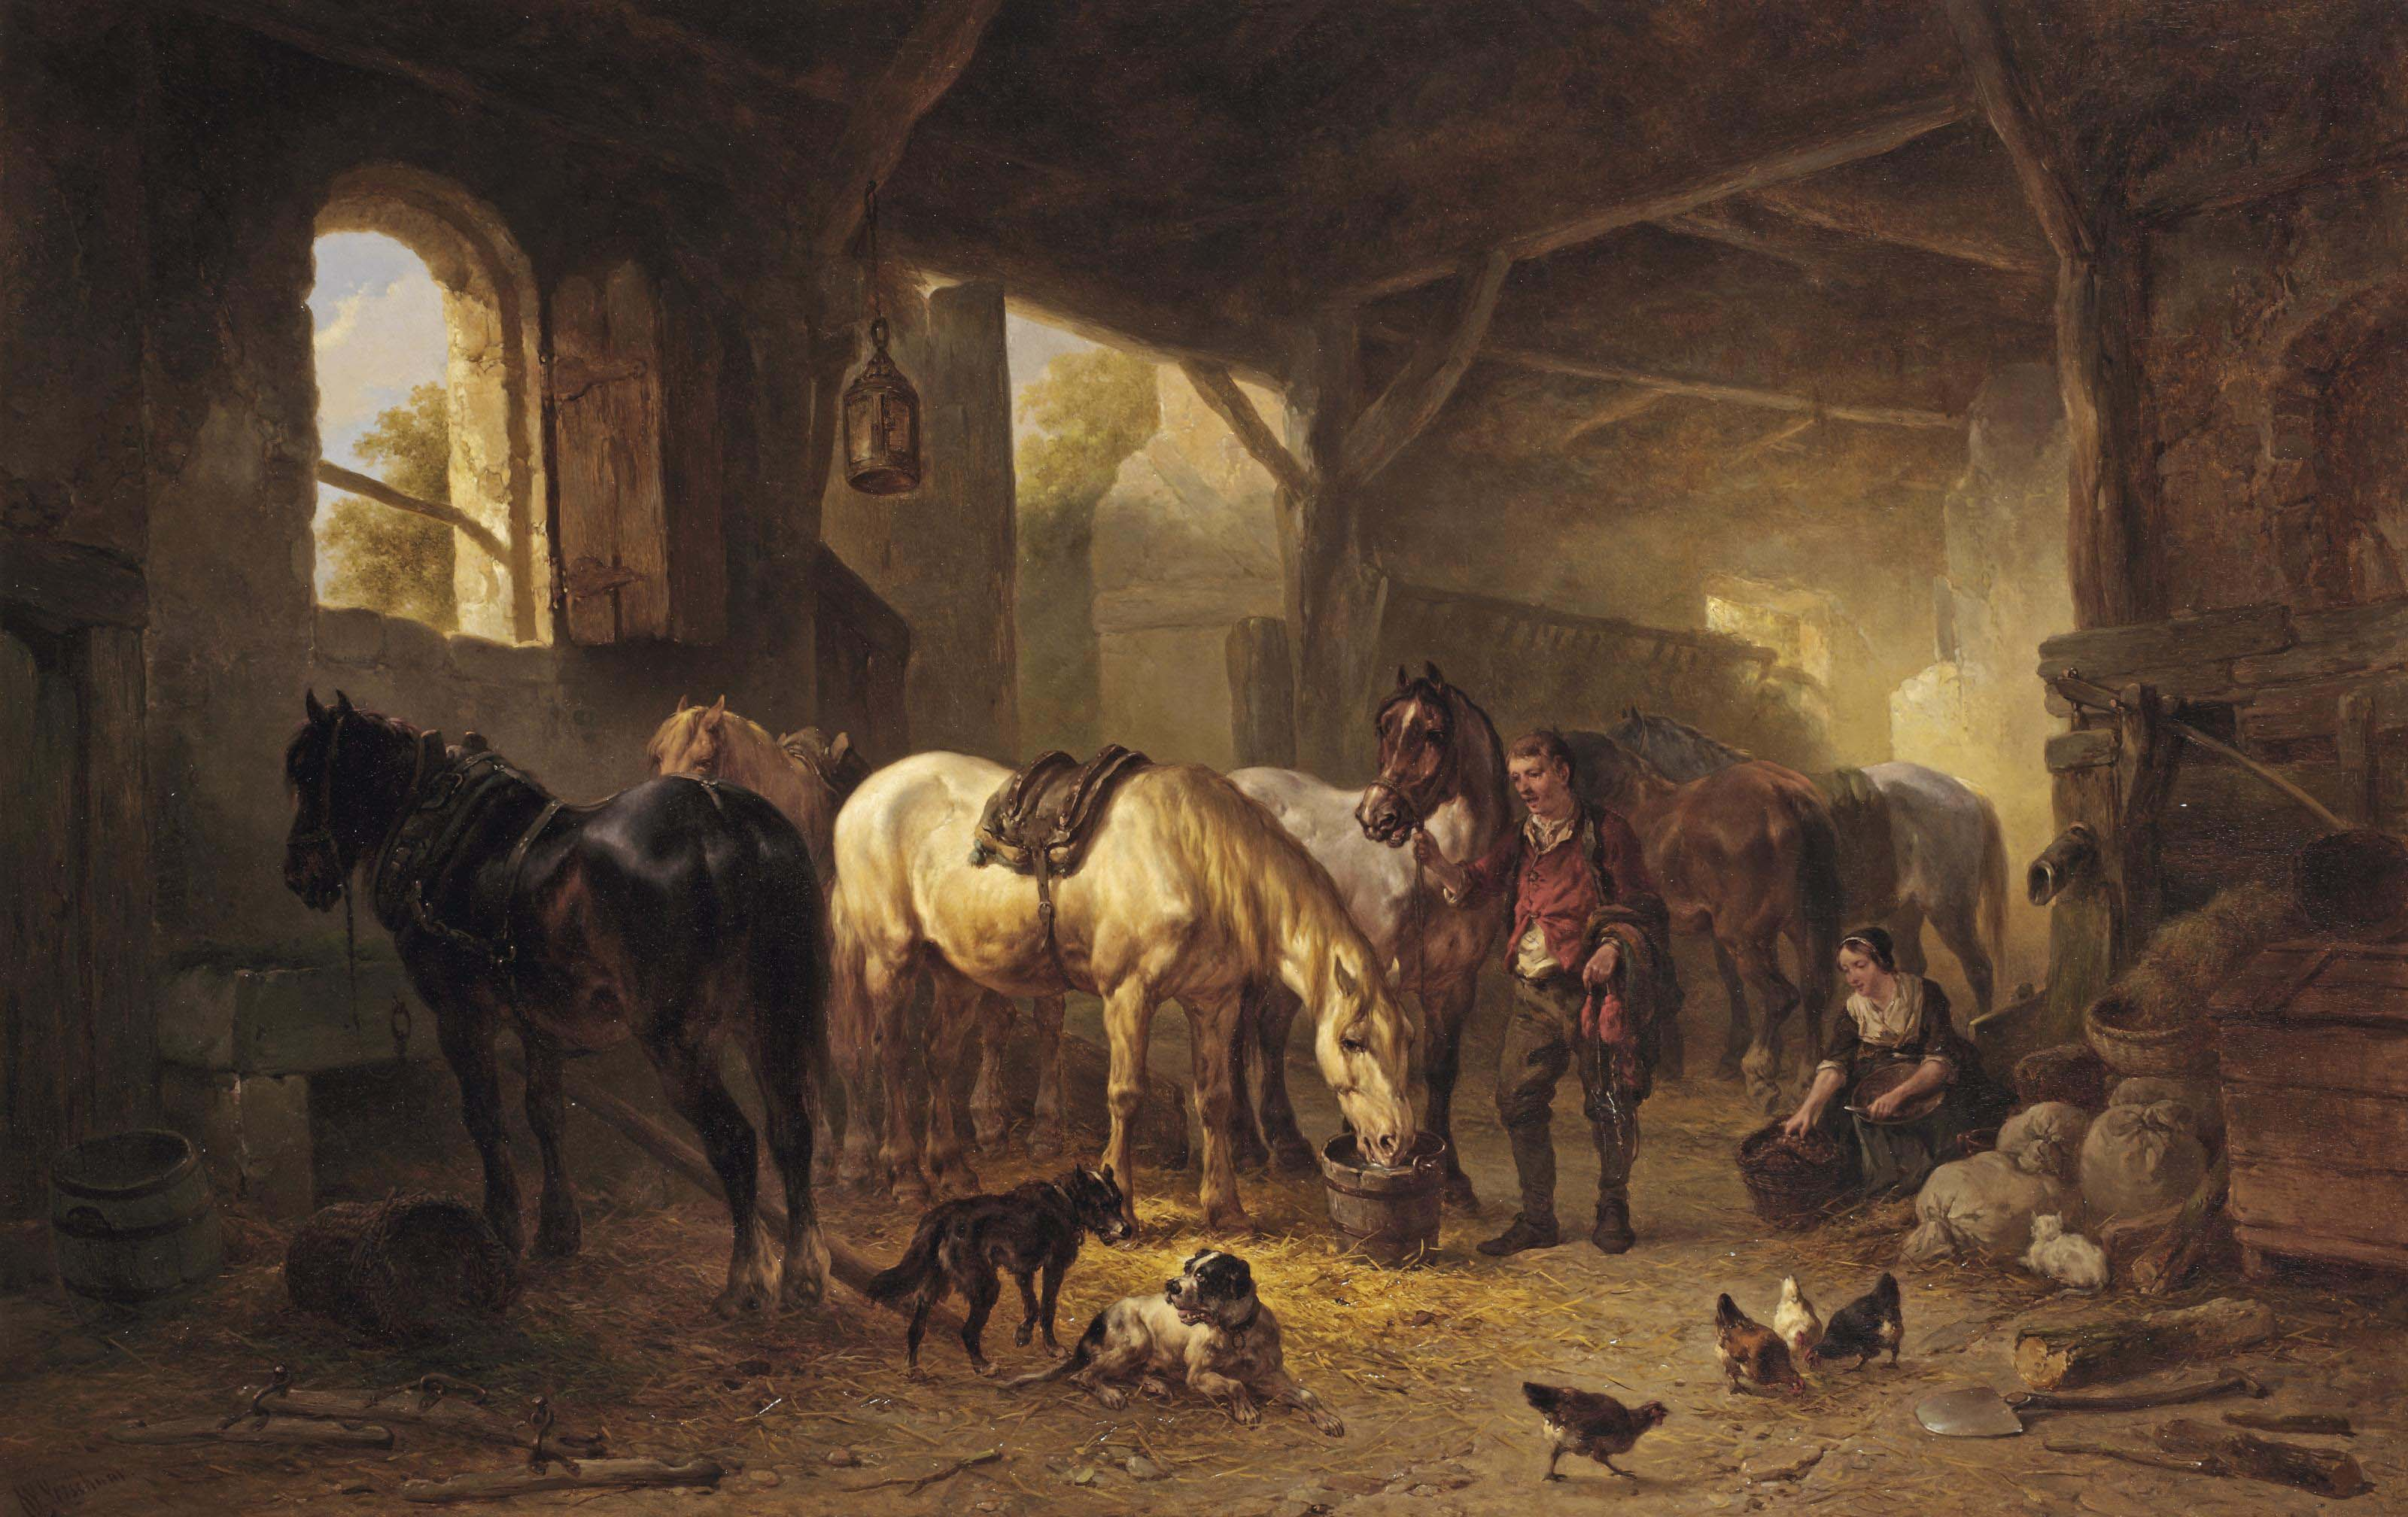 A sunlit stable interior with a stable boy and his horses